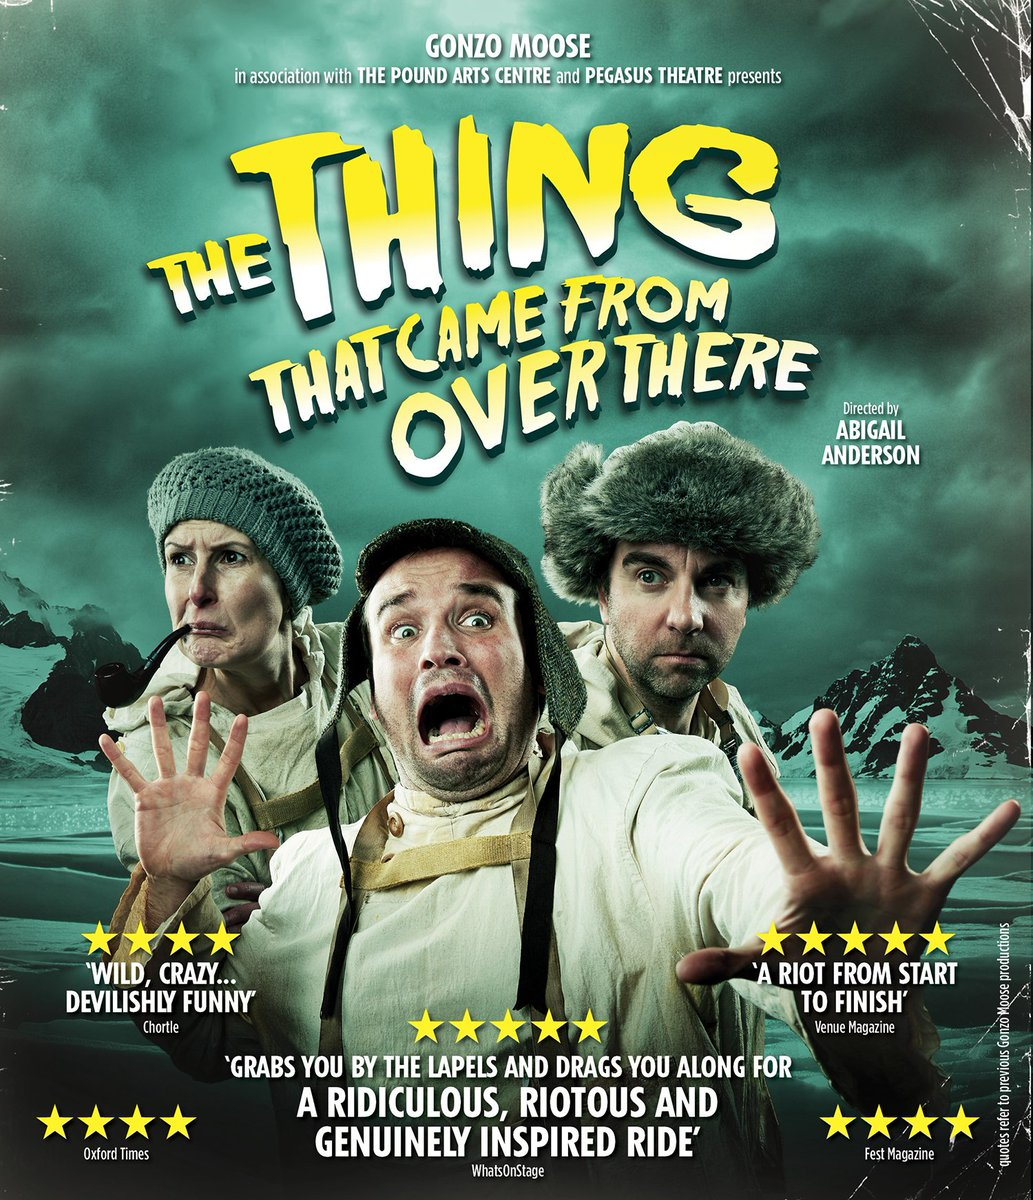 Coming to #BurtonBradstock Sat 3 Feb 7.30pm Inspired by the movies of the 1950's, 'The Thing That Came From Over There' by @gonzomoose is a fast-paced rollicking ride mixing comedy, thrills, gags, puppetry, hilariously gruesome deaths & much more! https://t.co/mtFFbfjXOu